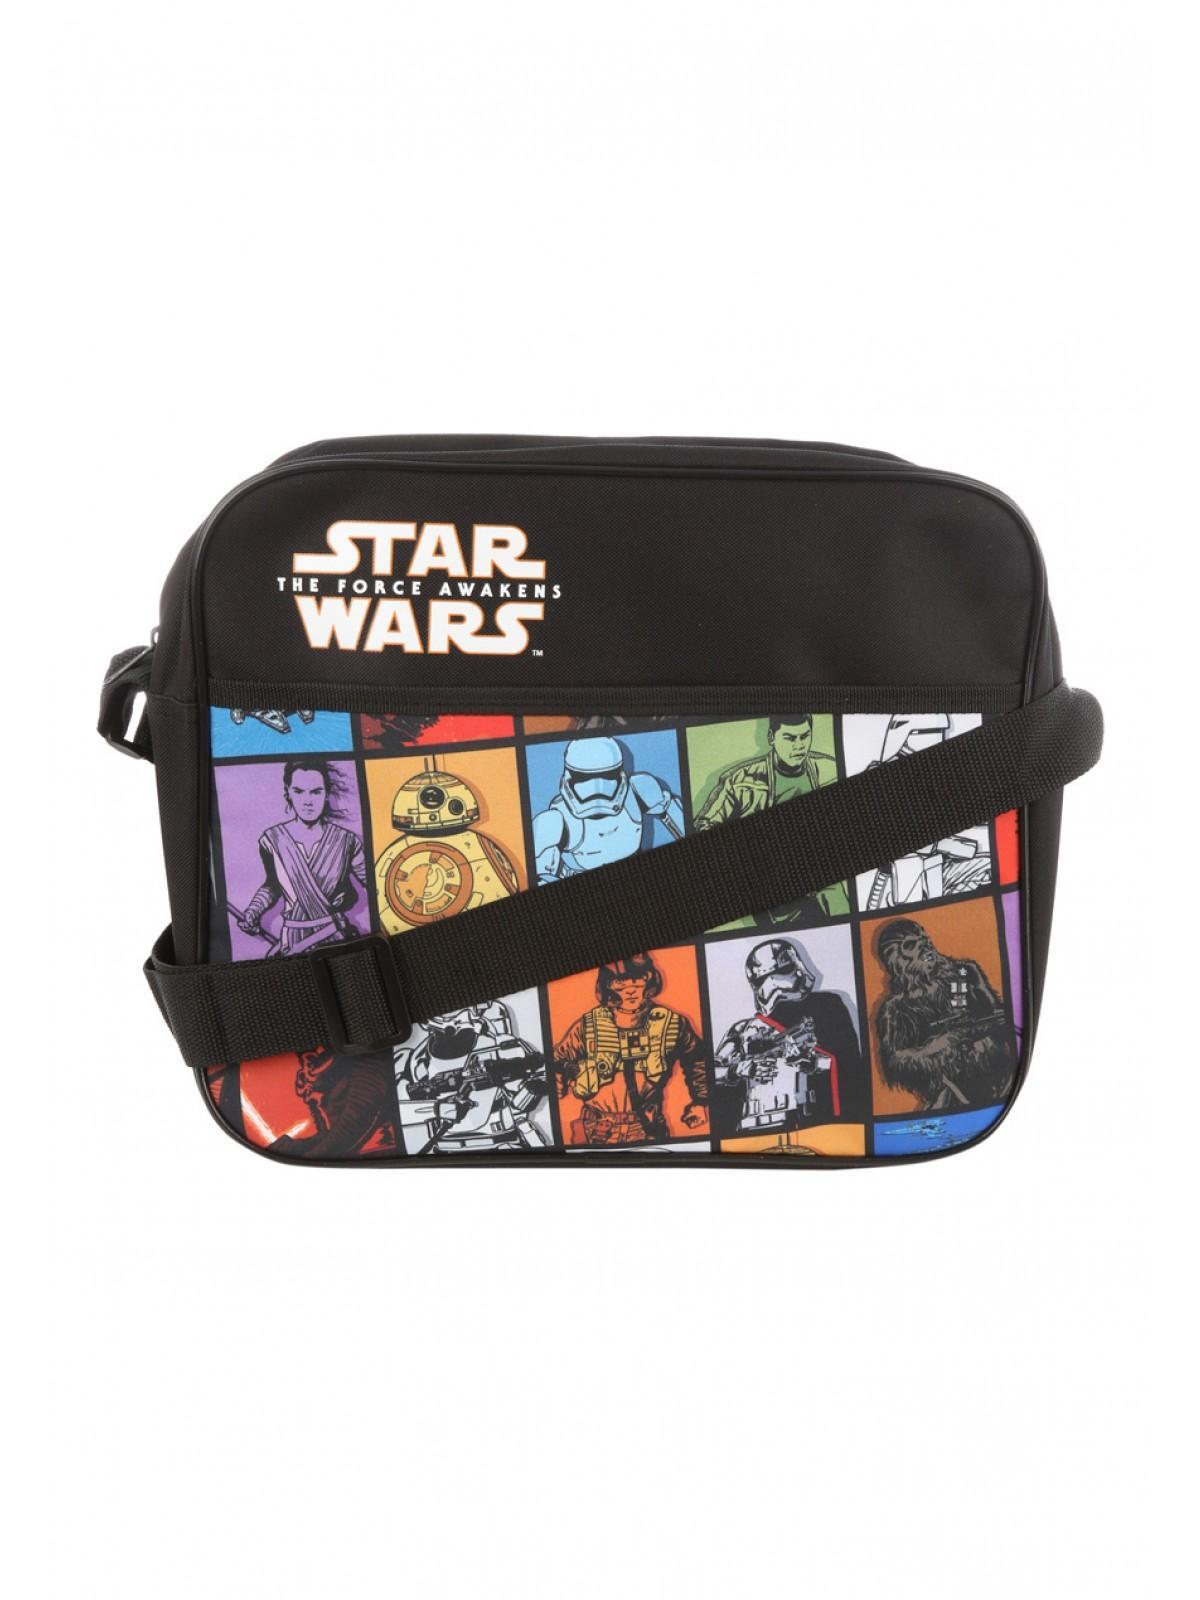 Boys Younger Boys Star Wars Messenger Bag | Peacocks